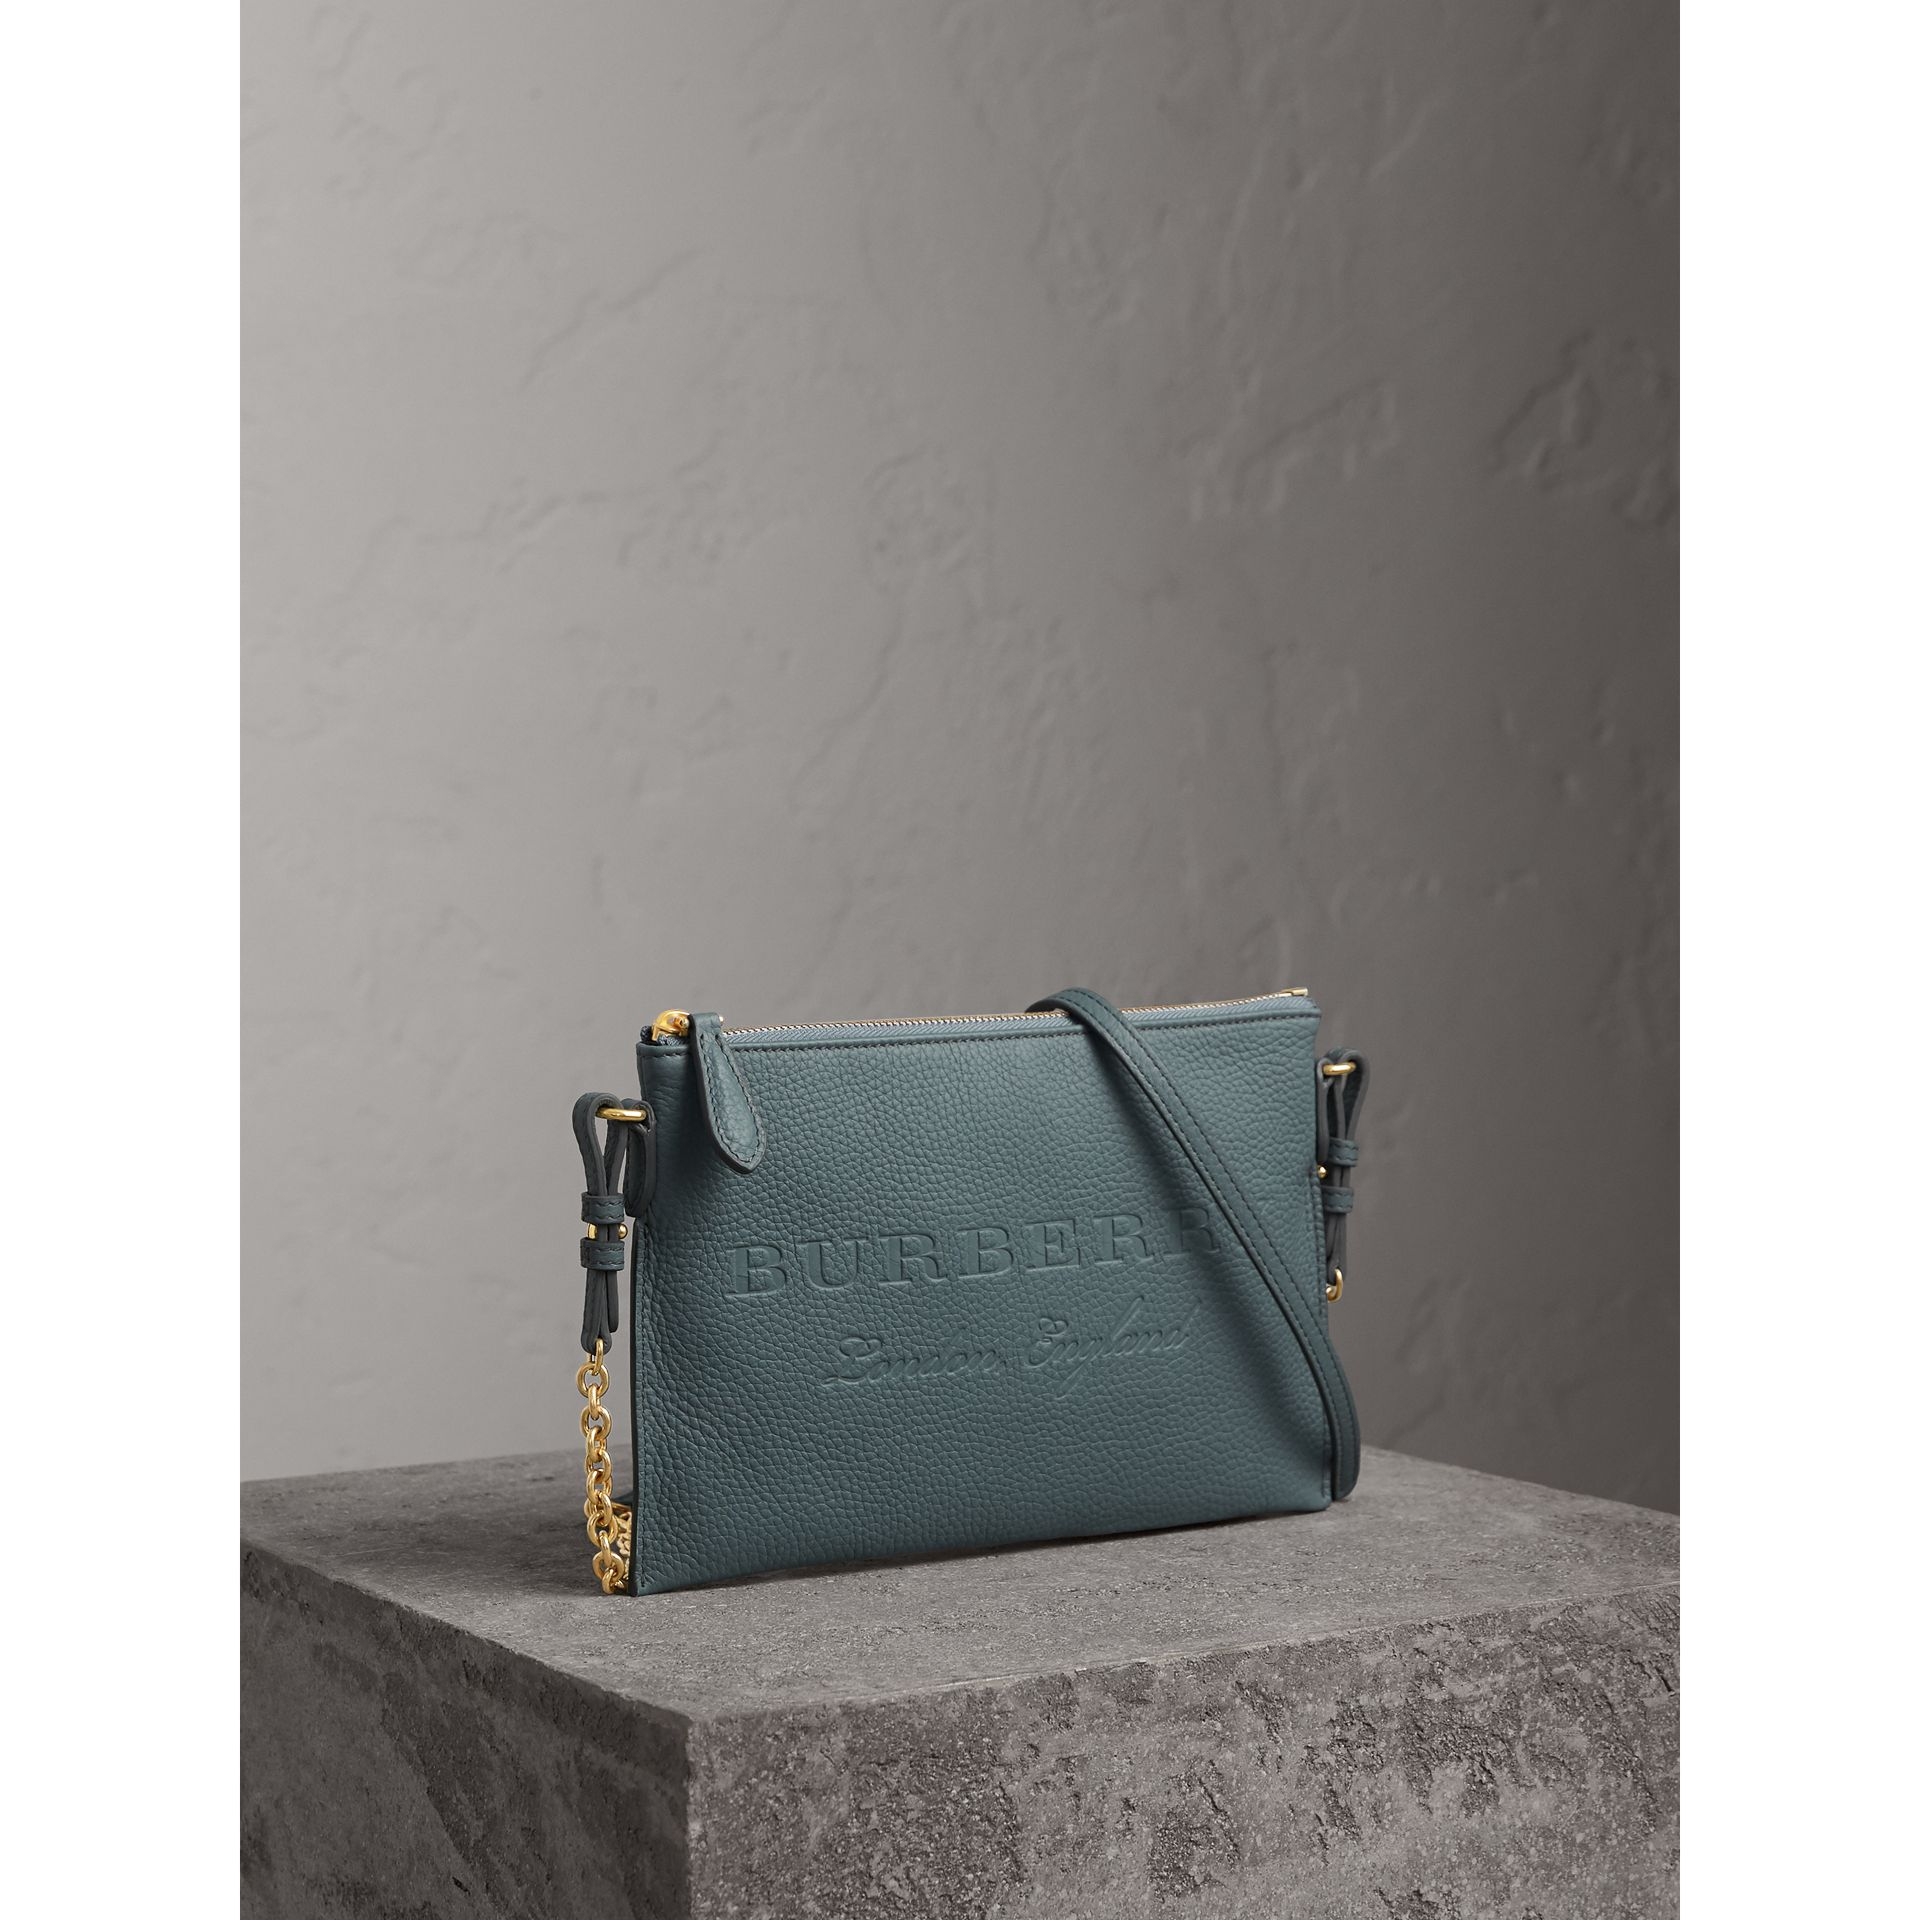 Embossed Leather Clutch Bag in Dusty Teal Blue - Women | Burberry - gallery image 6